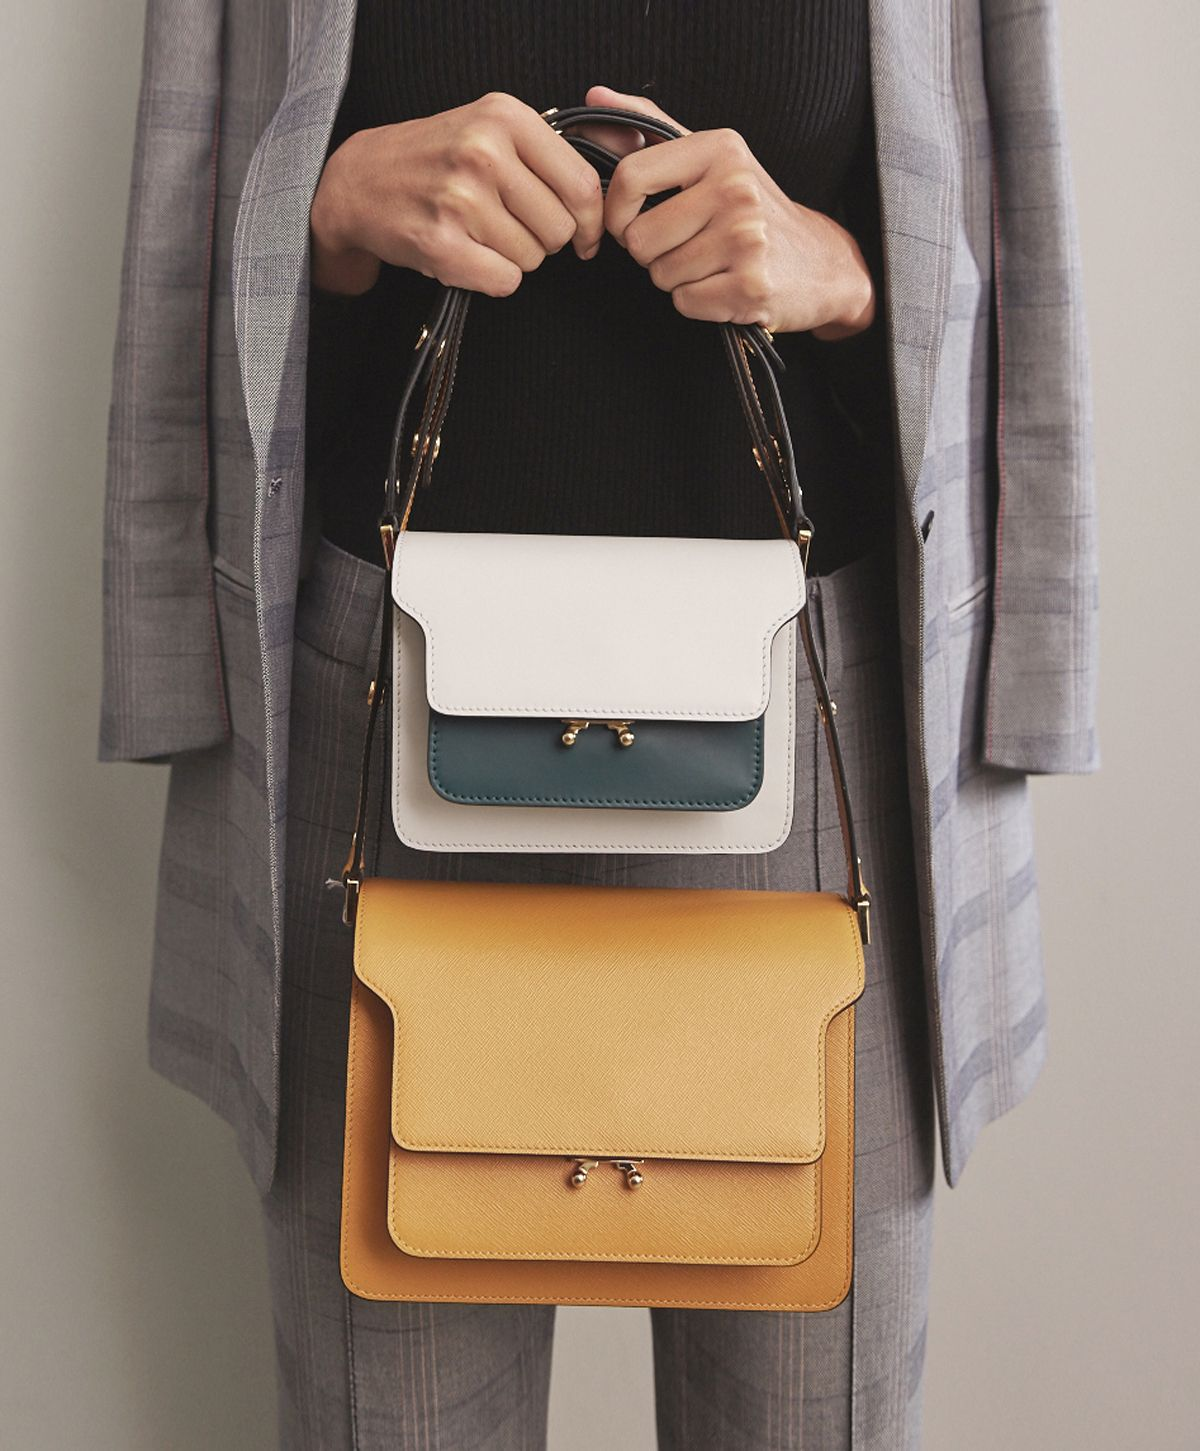 17479cf4a67d Two bags are better than one, especially when its Marni. Shop Marni at  Farfetch.